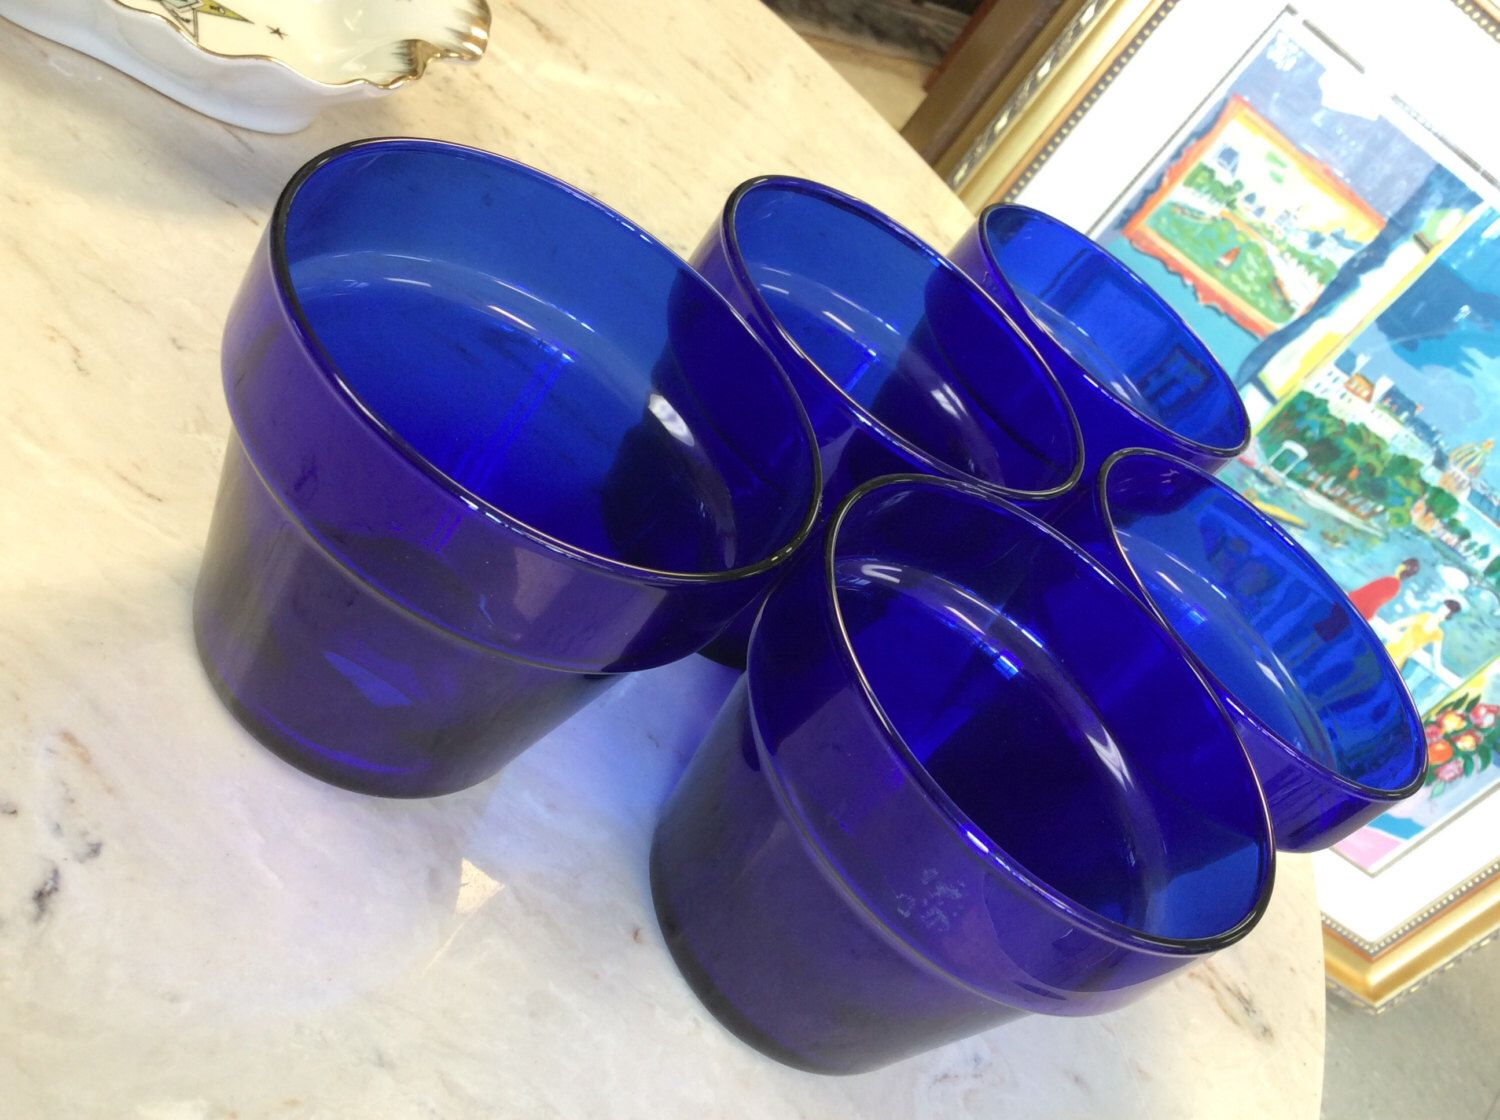 "5 Libbey Cobalt blue 3.5"" Glass Pot set by fabandaffordable on Etsy https://www.etsy.com/listing/401102001/5-libbey-cobalt-blue-35-glass-pot-set"